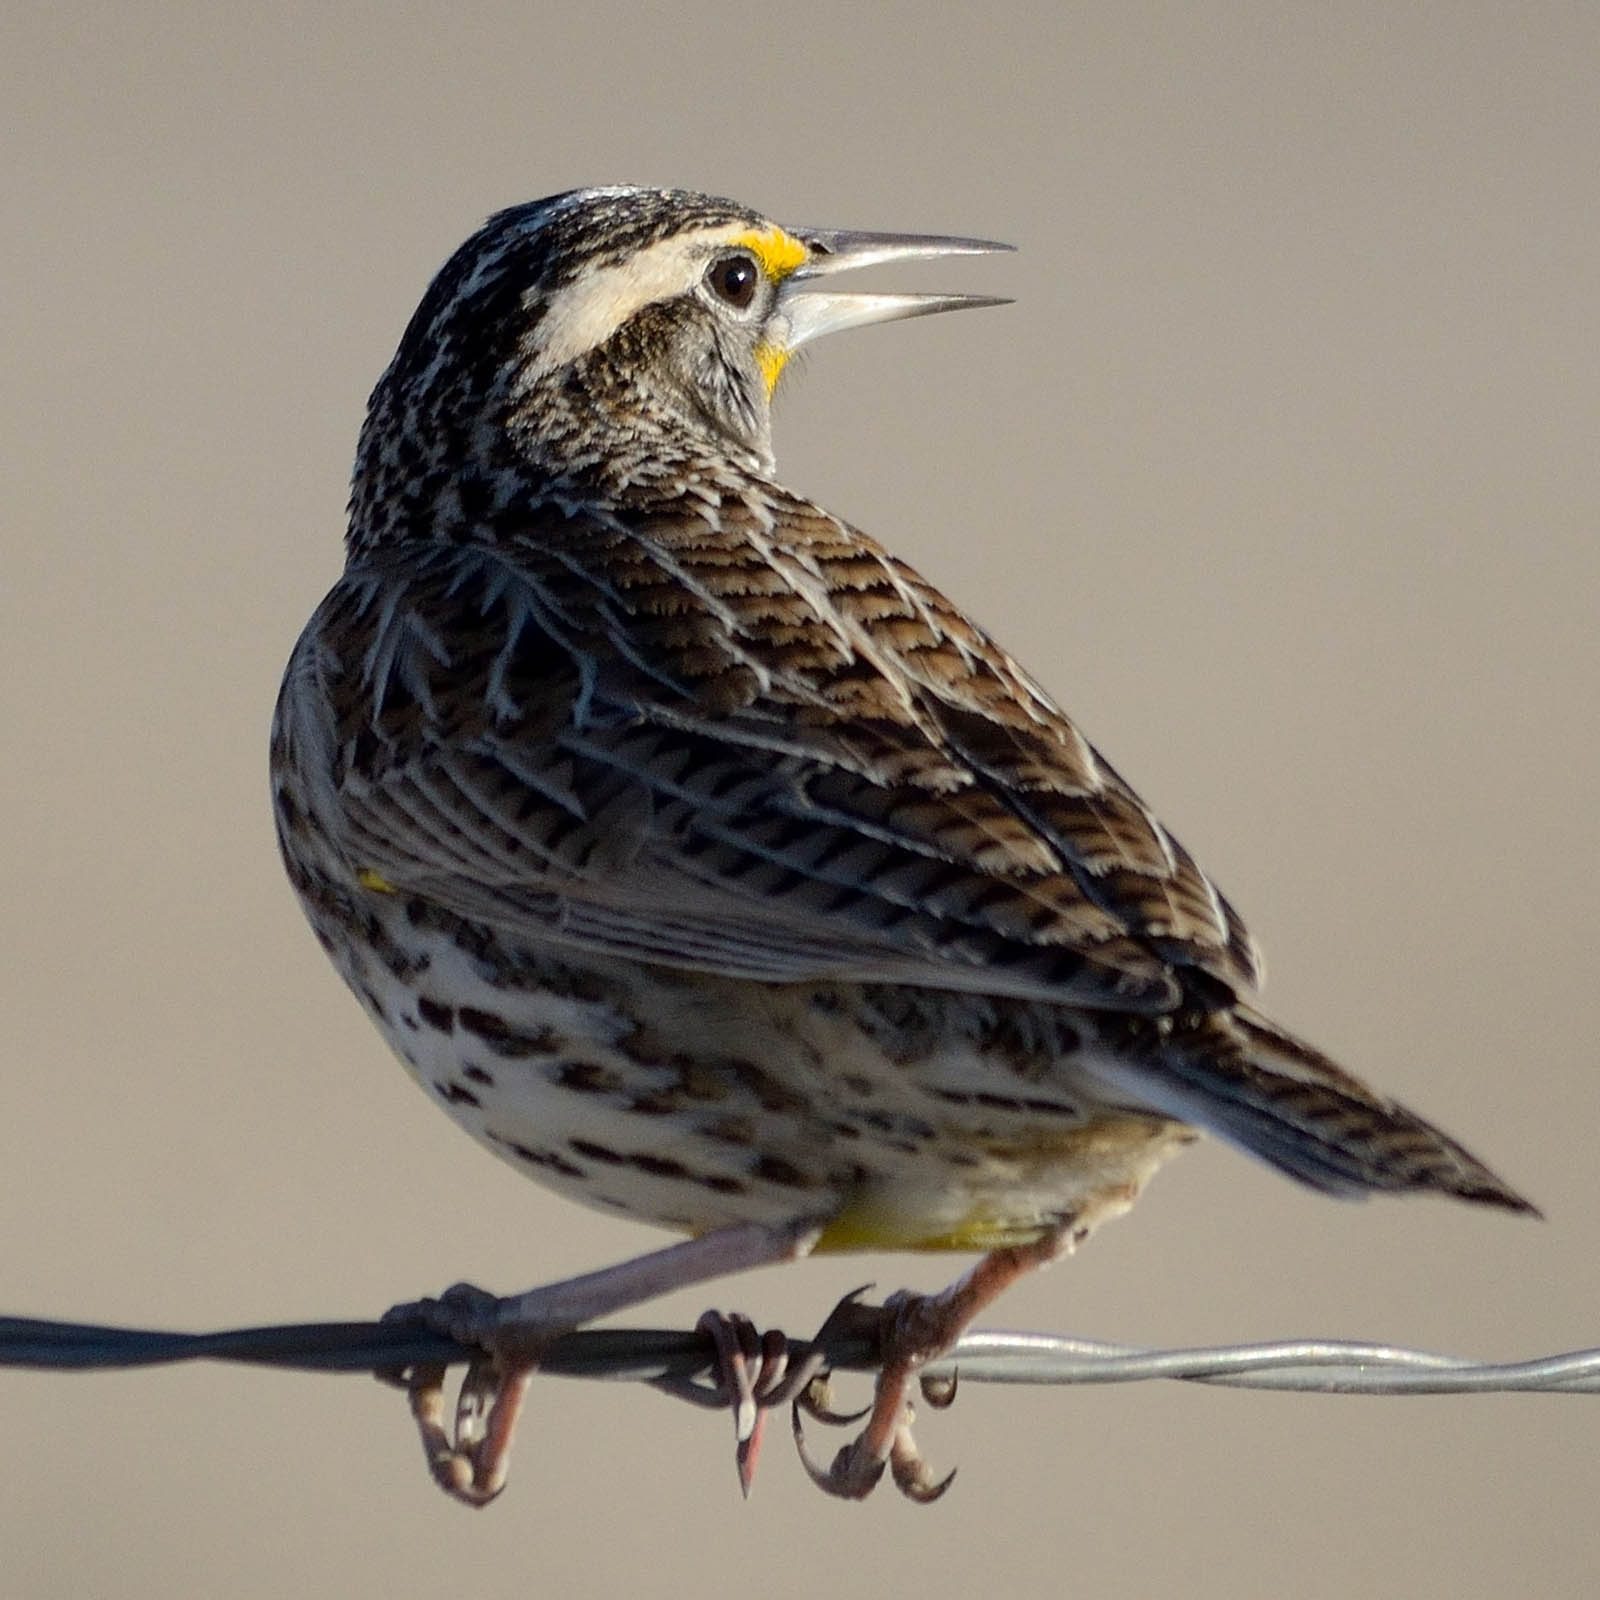 Western Meadowlark. Frank Lospalluto photo.